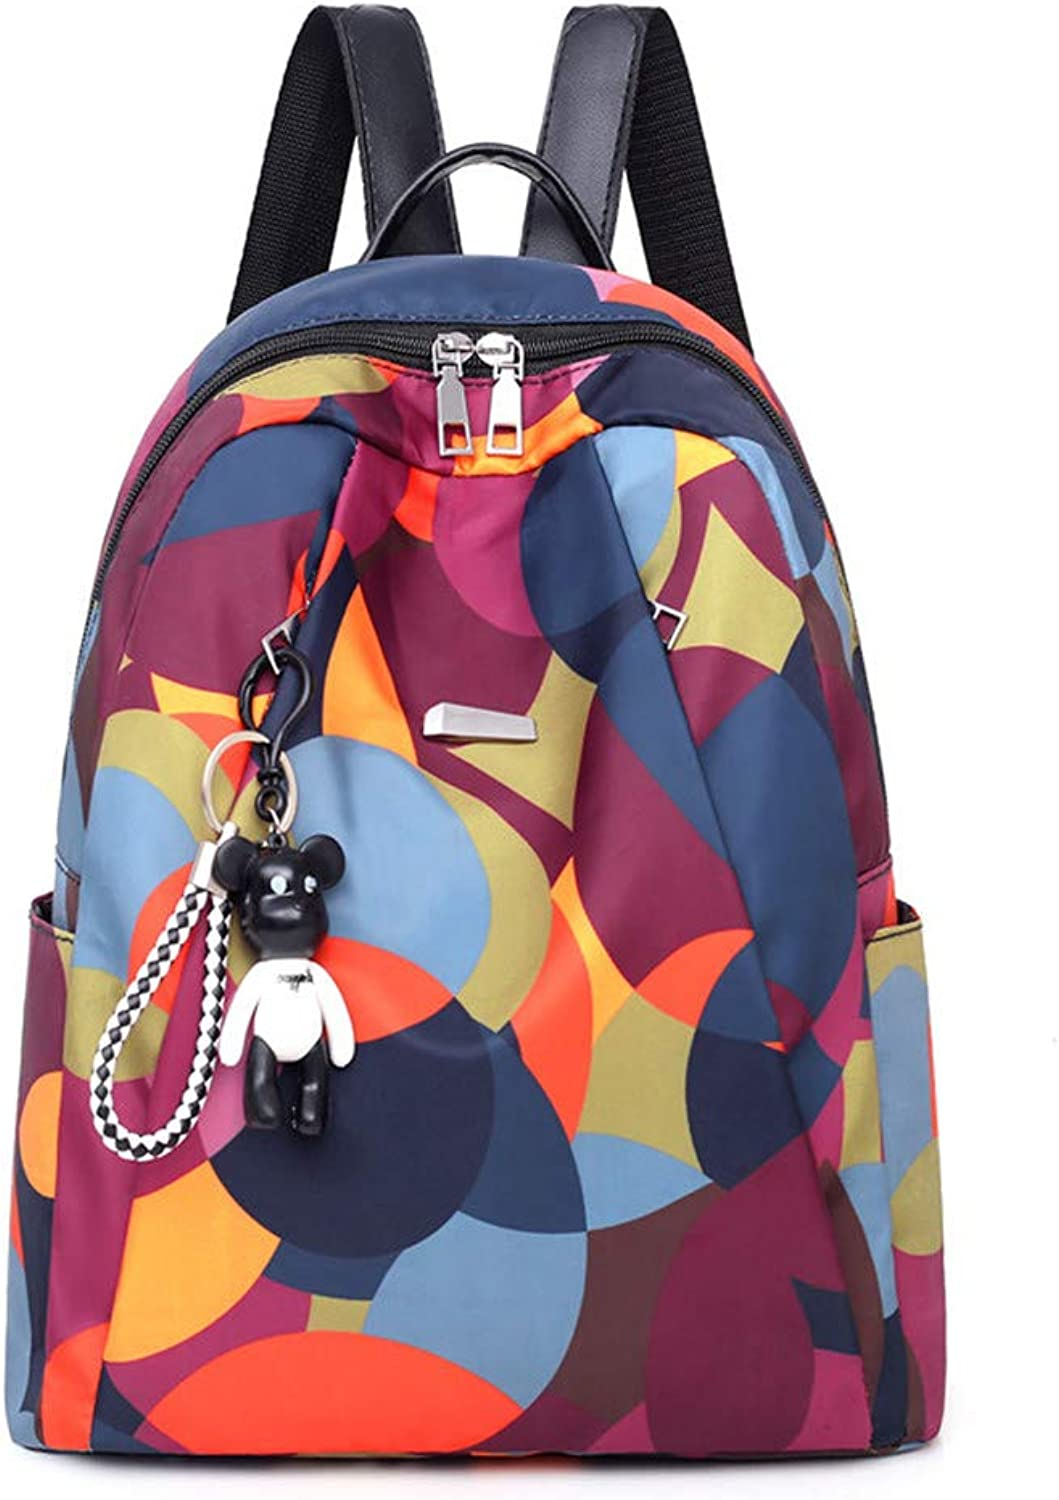 Multicolor Oxford Cloth Backpack Canvas Backpack Large Capacity Bag Casual Practical Simple